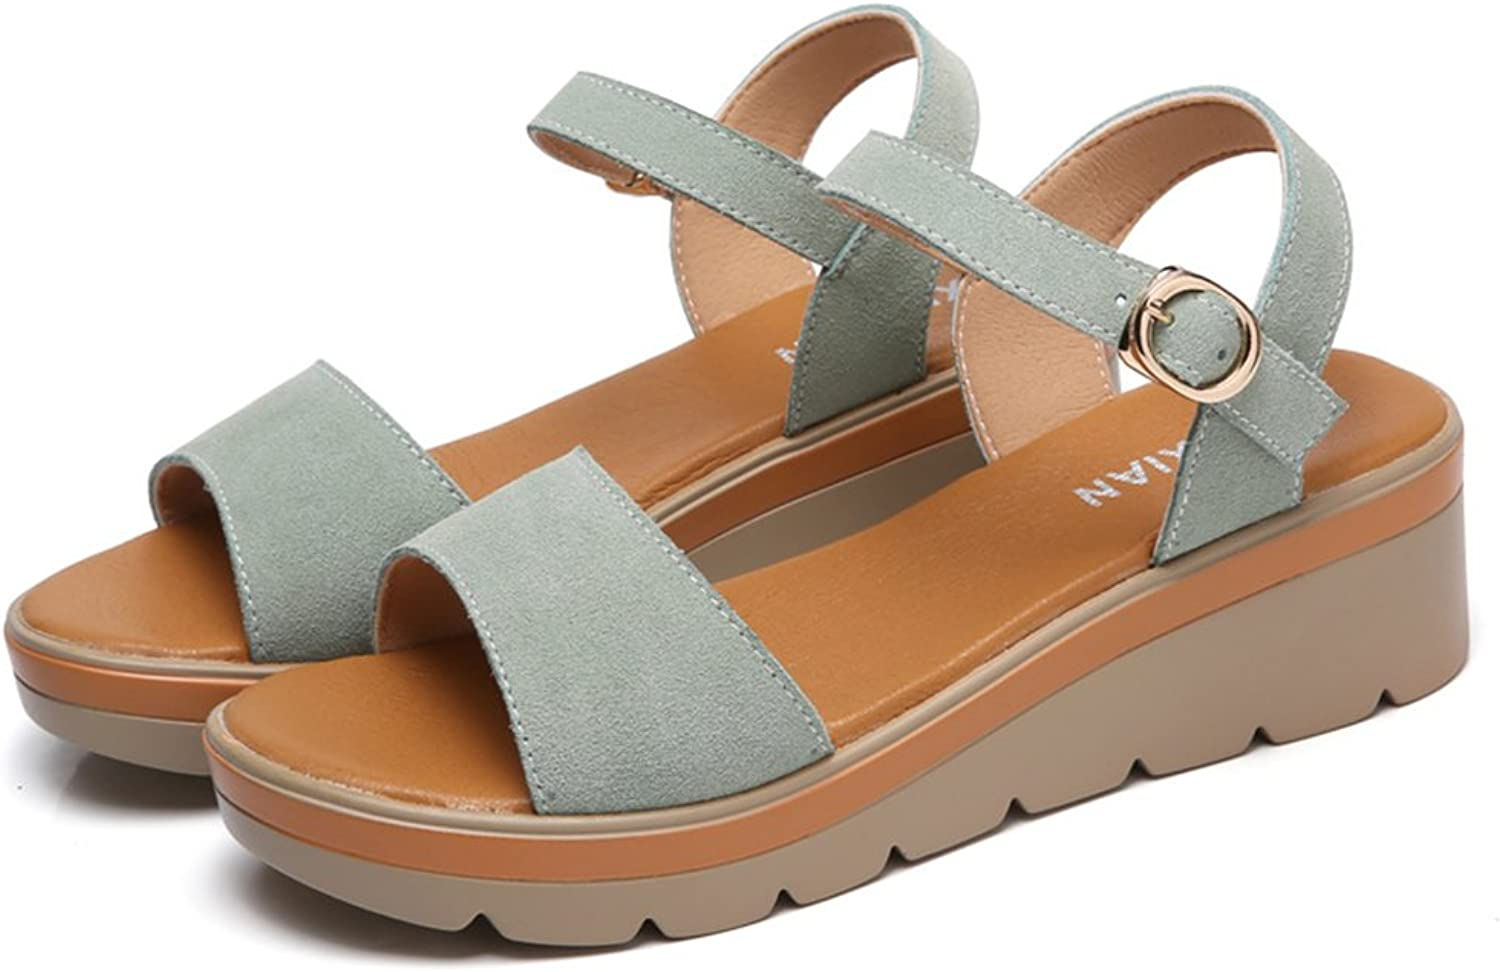 Mobnau Women's Leather Ankle Strap Sandles Summer Sandals